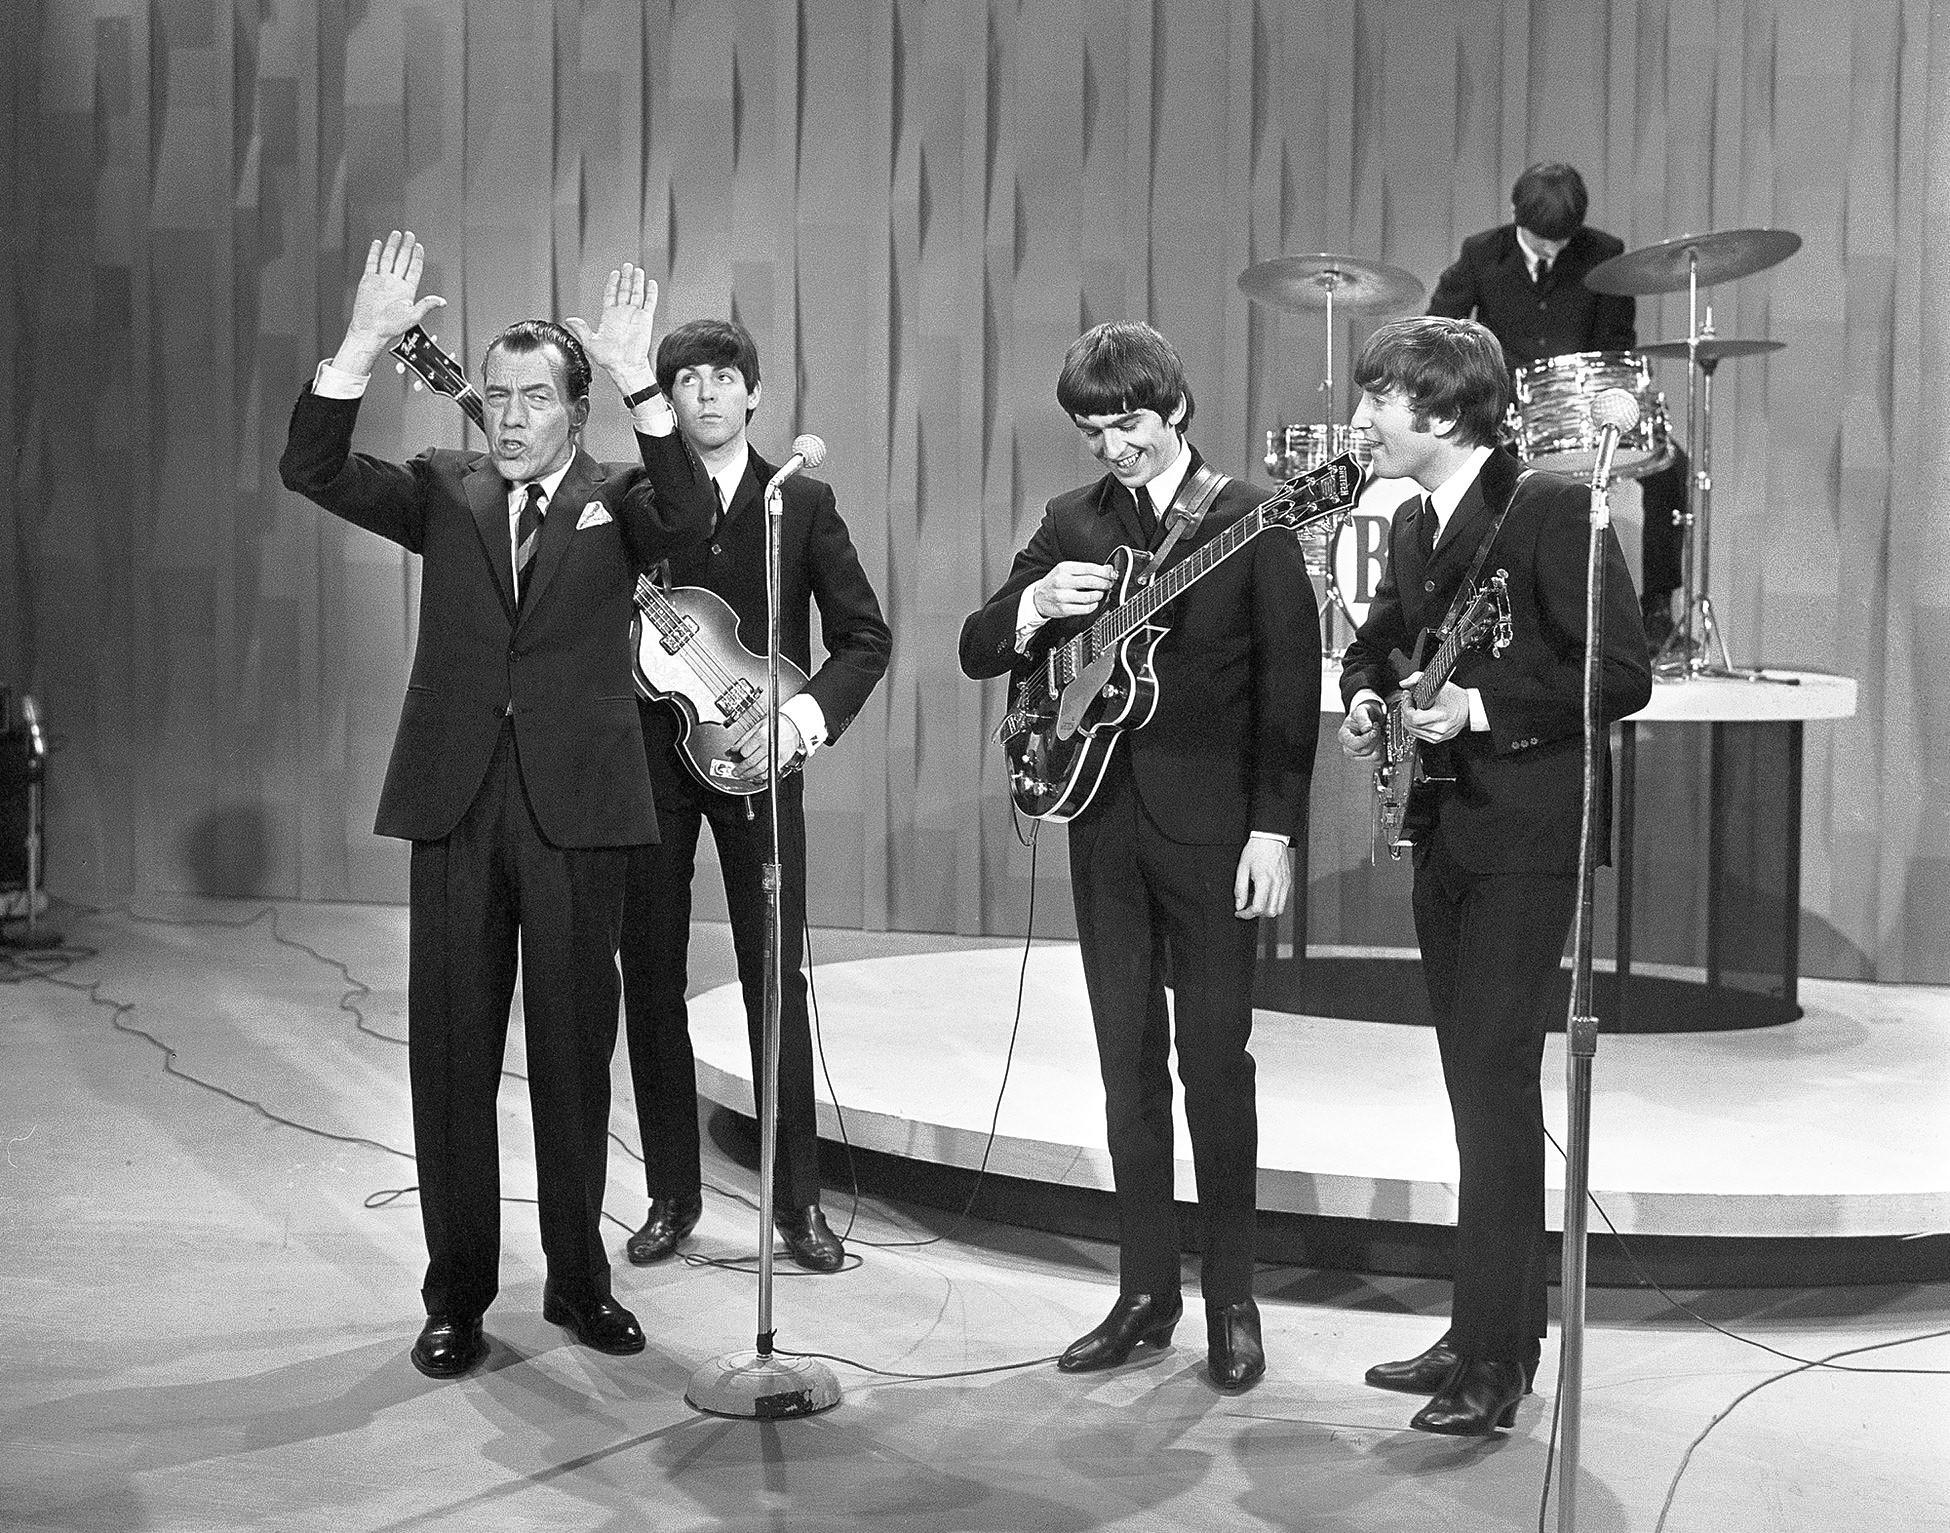 Ed Sullivan (left) introduces the Beatles to America on Feb. 9, 1964, a moment brought back in a 50th anniversary program Sunday at Northampton Community College.